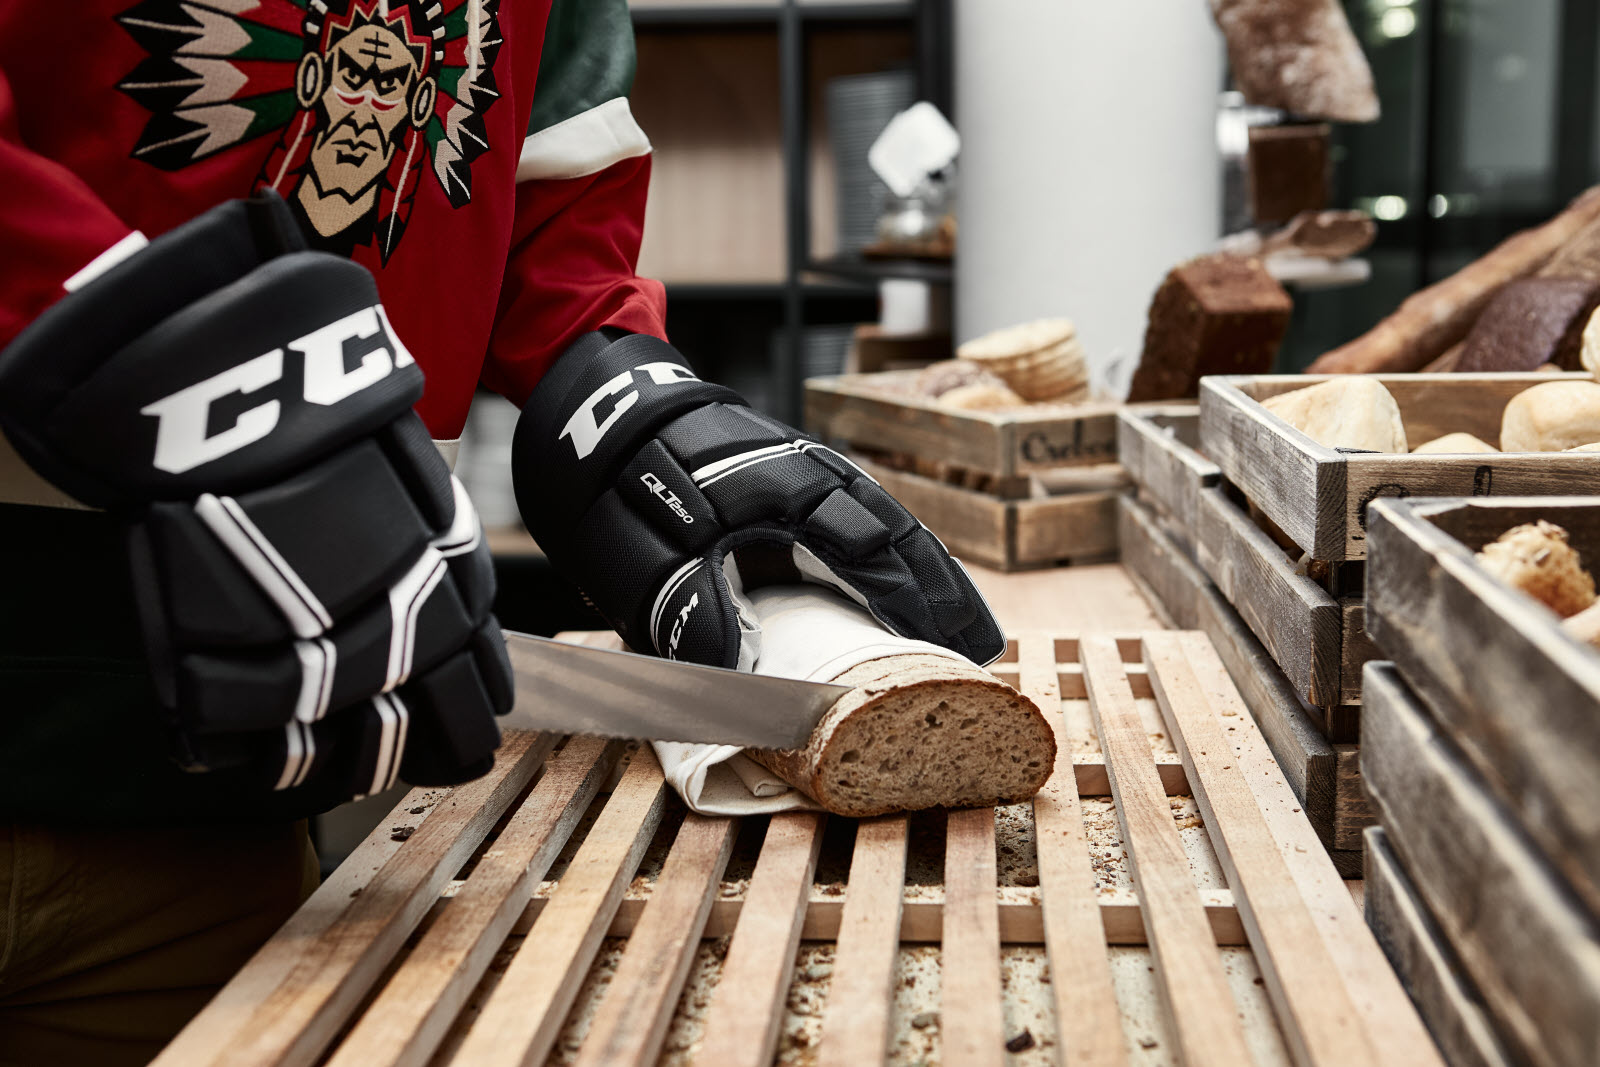 Hockey player cutting up bred into slices